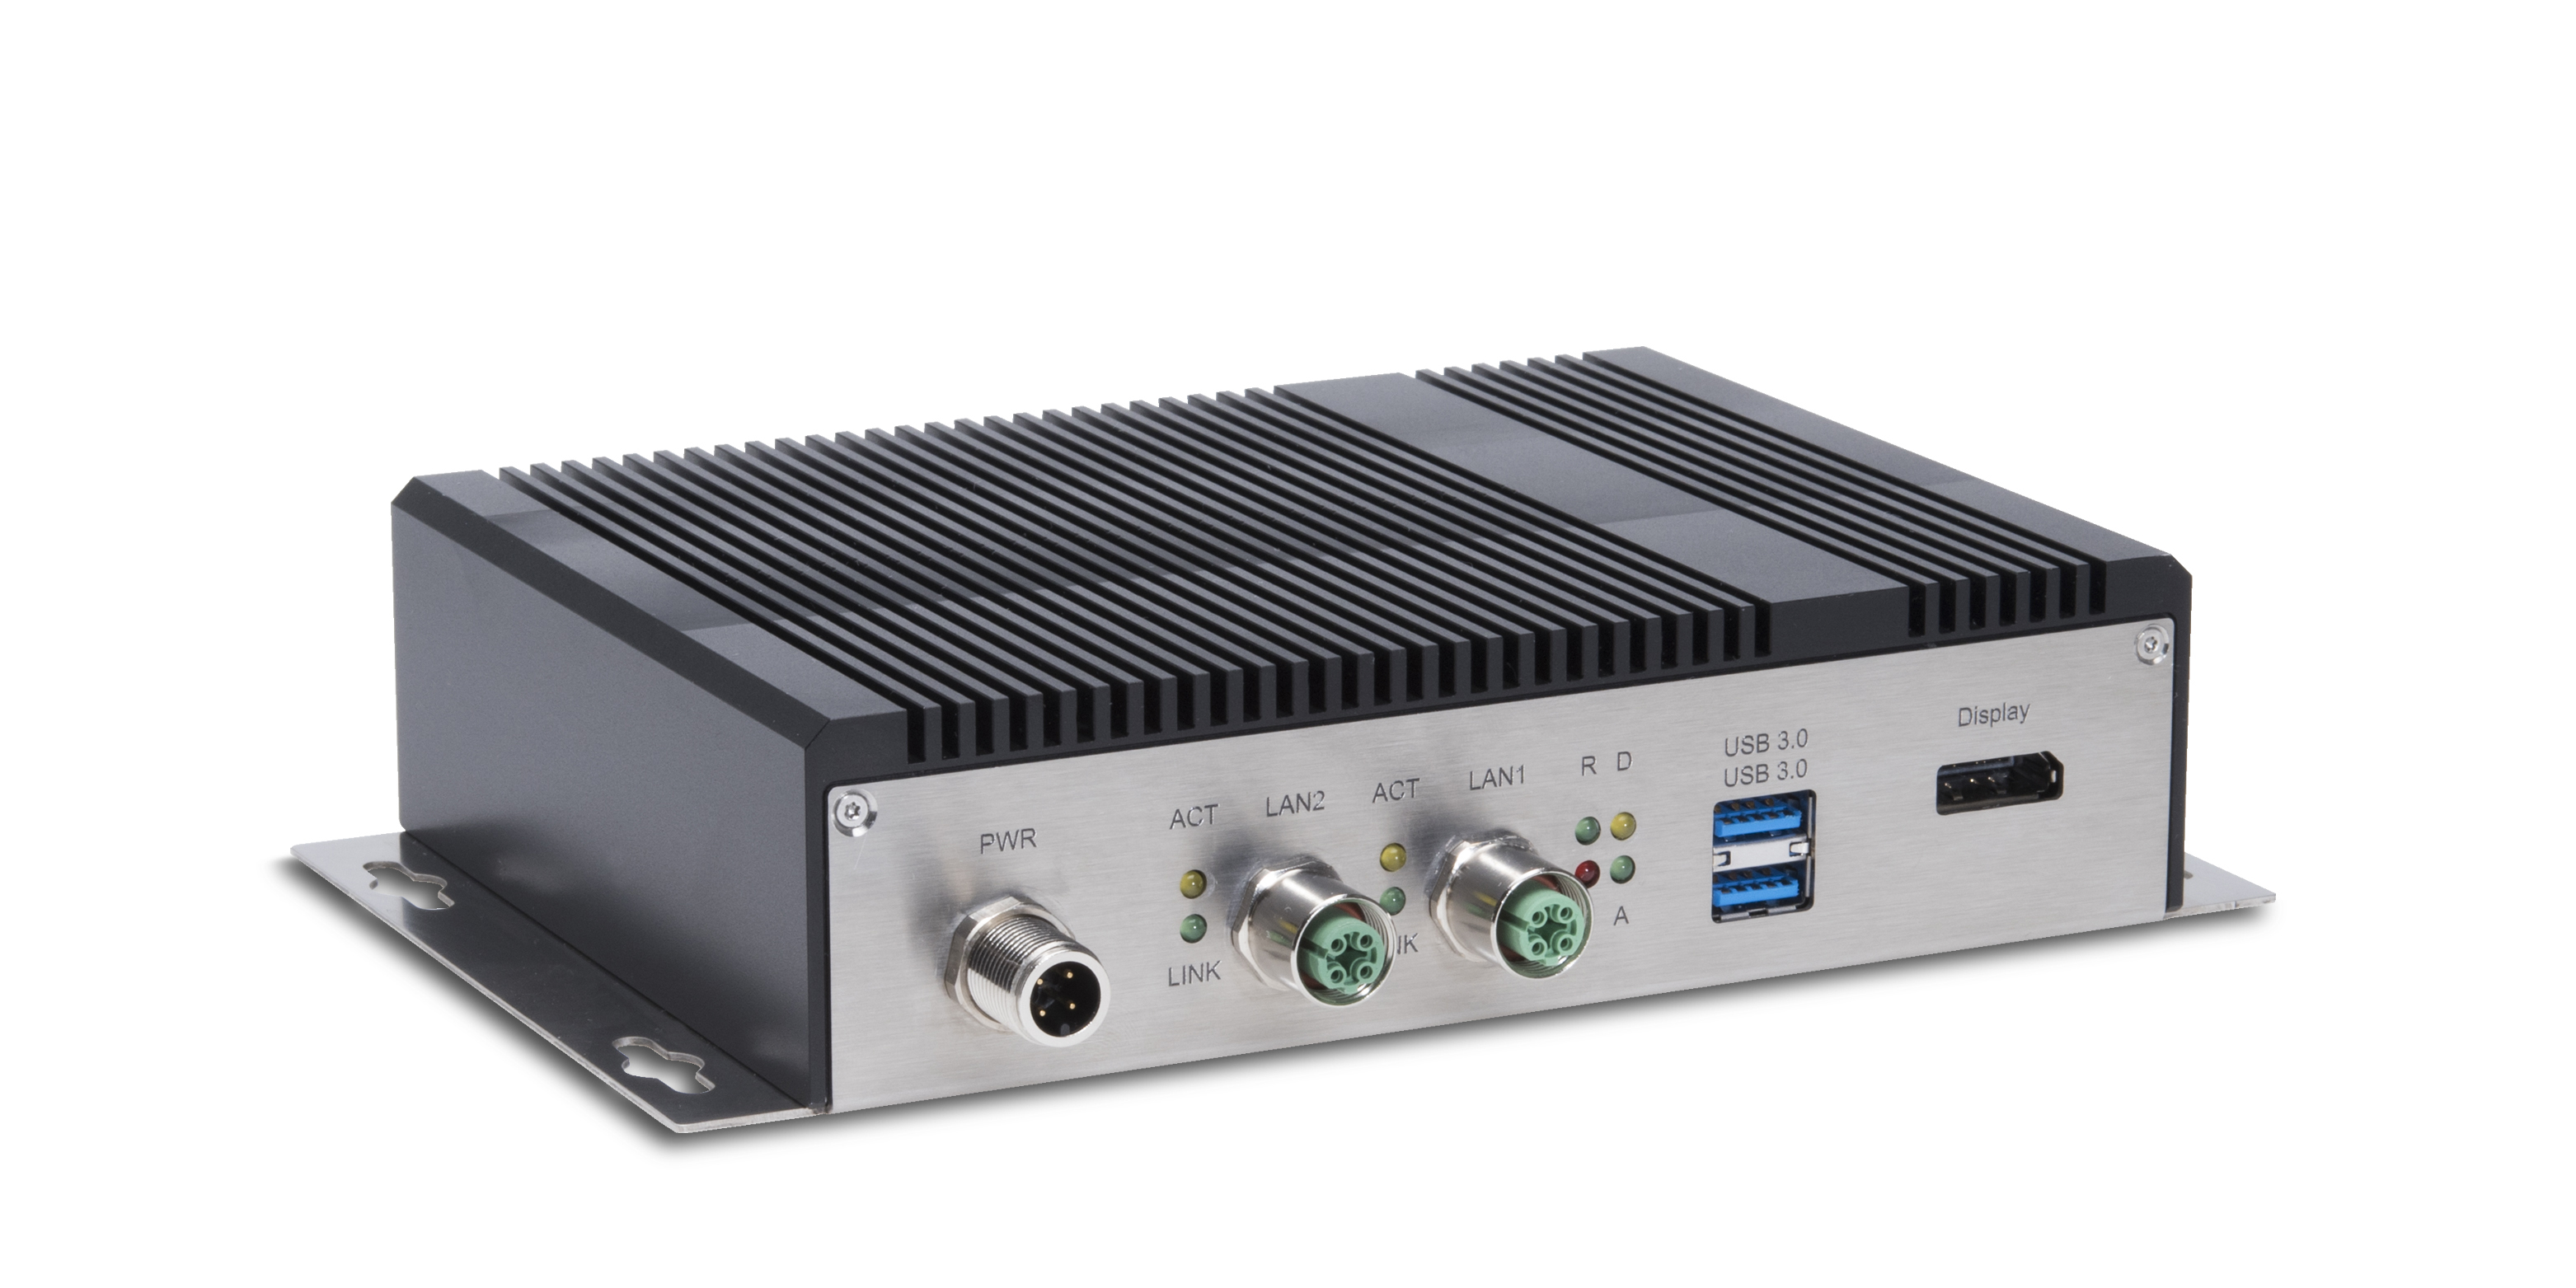 Rugged Industrial PC for commercial vehicles, railway and transportation applications.